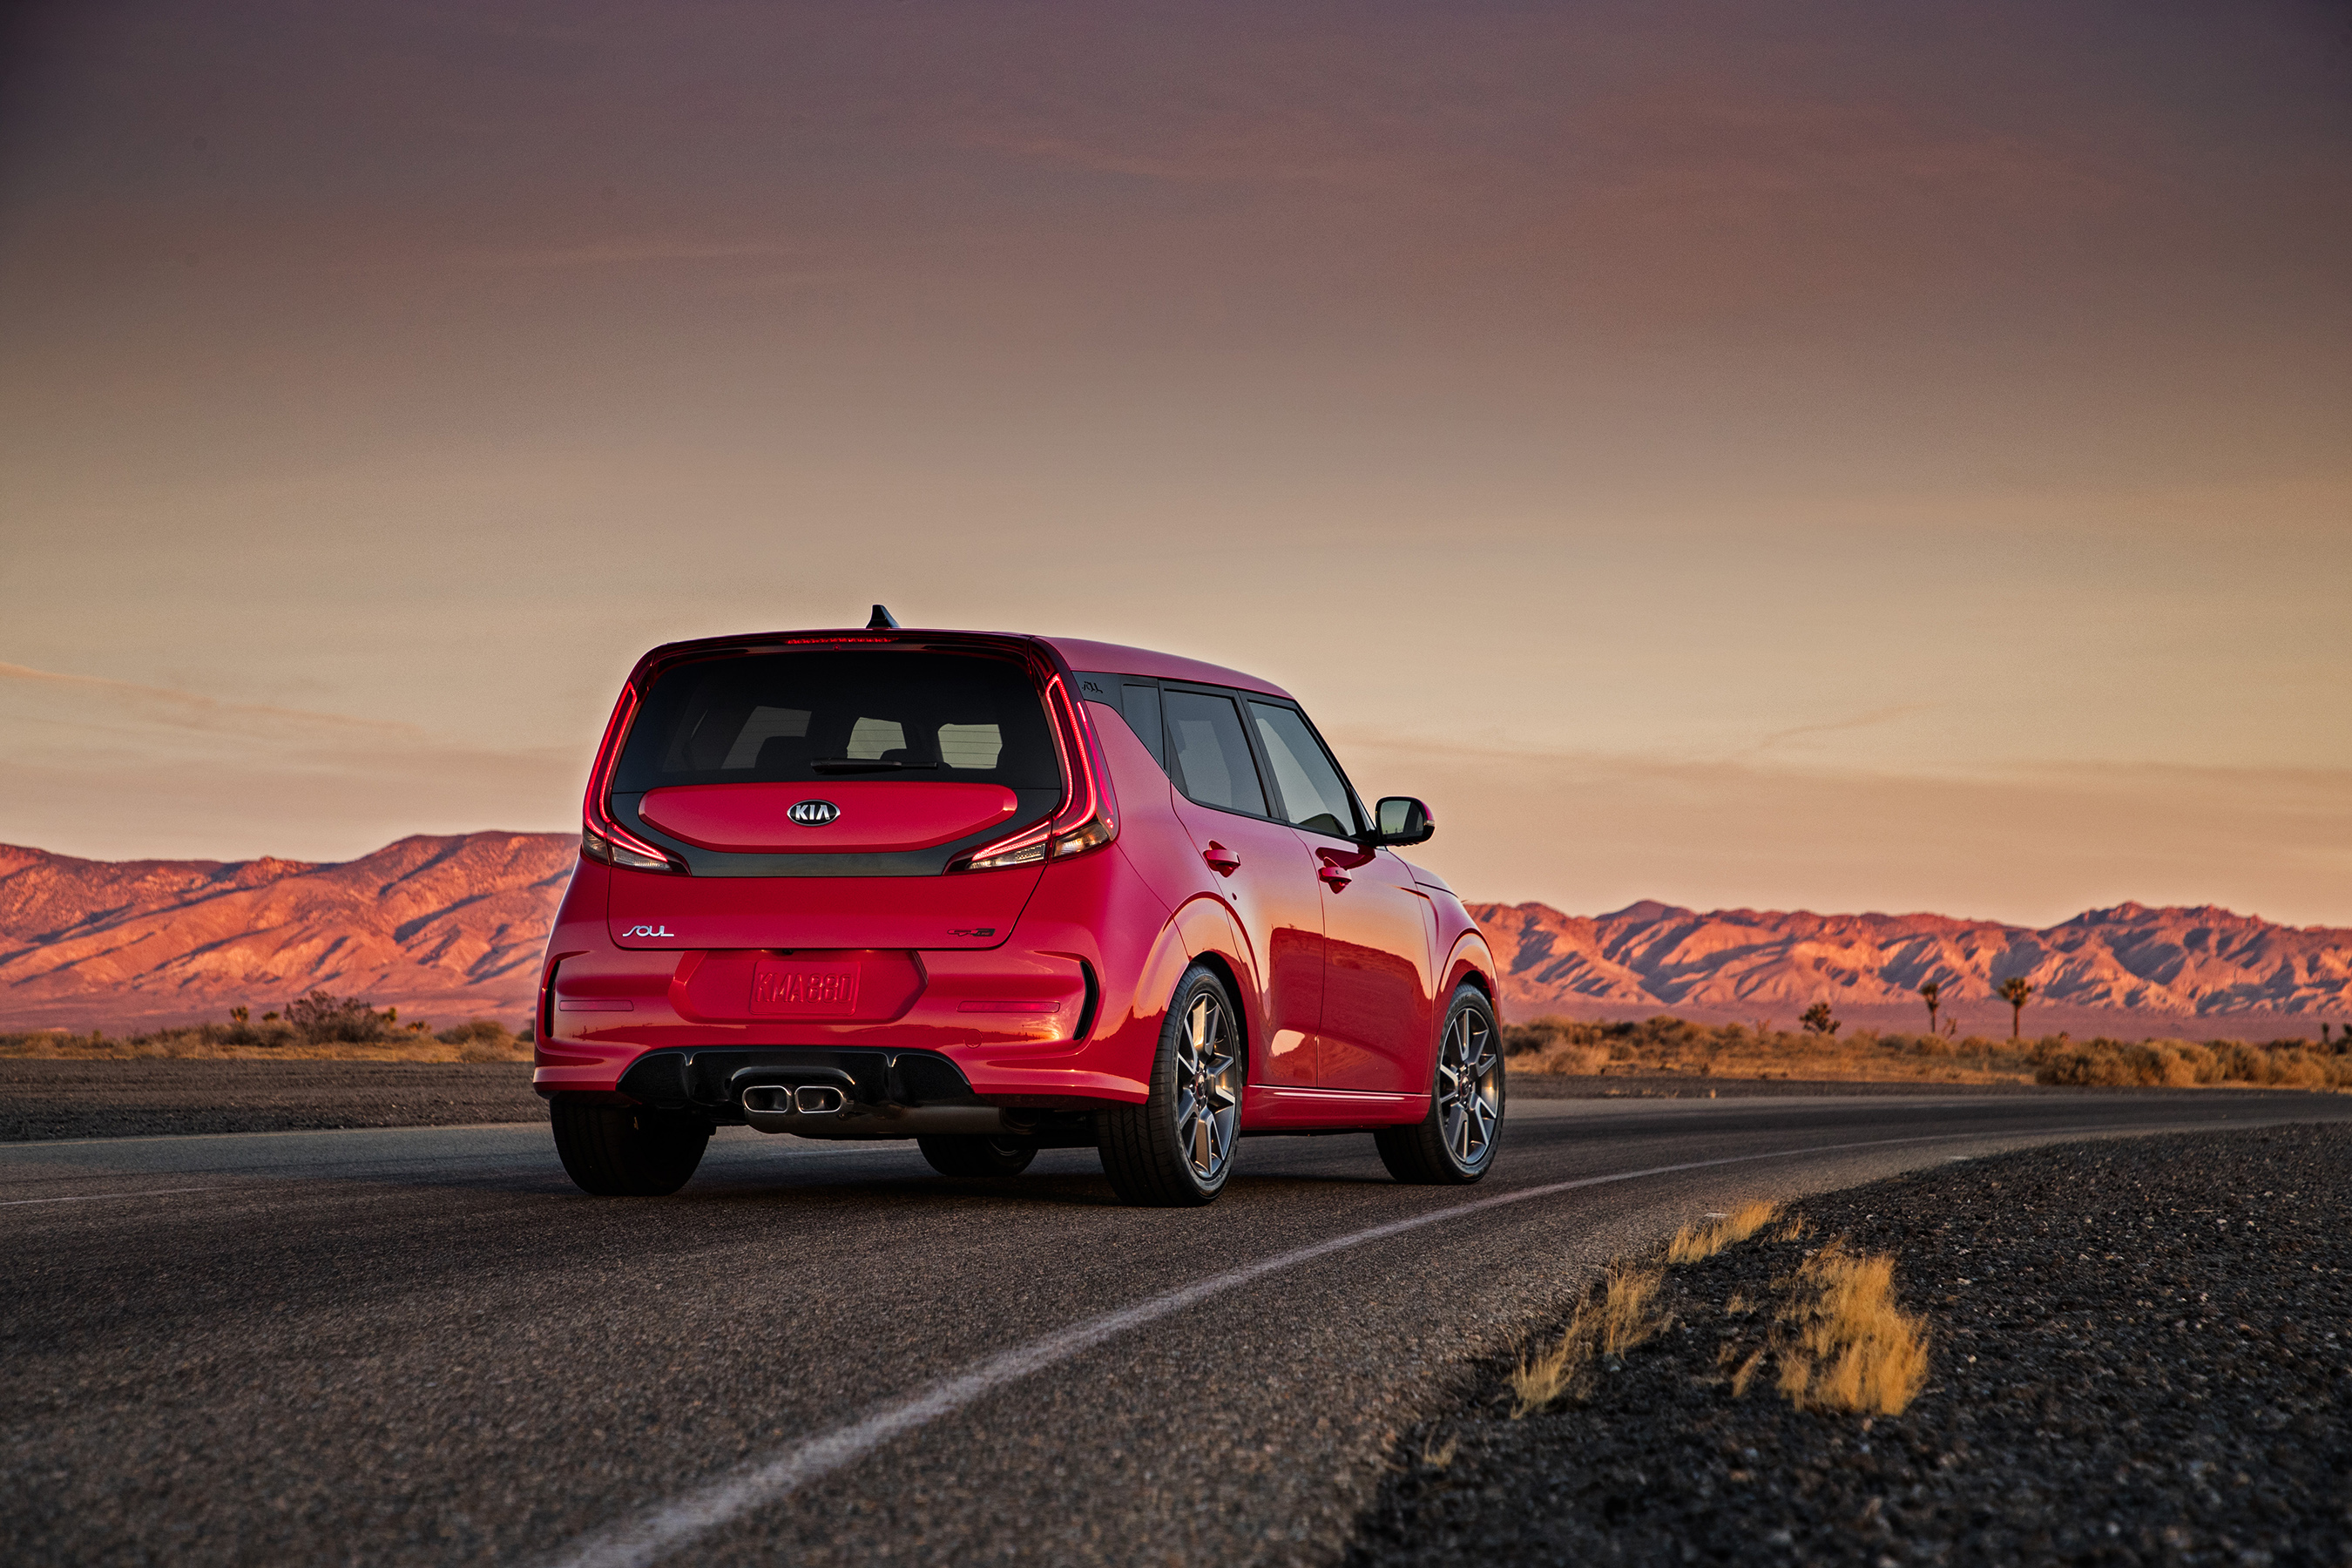 Kia Soul's iconic shape and profile evolve on top of all-new platform, providing a better way to roll.